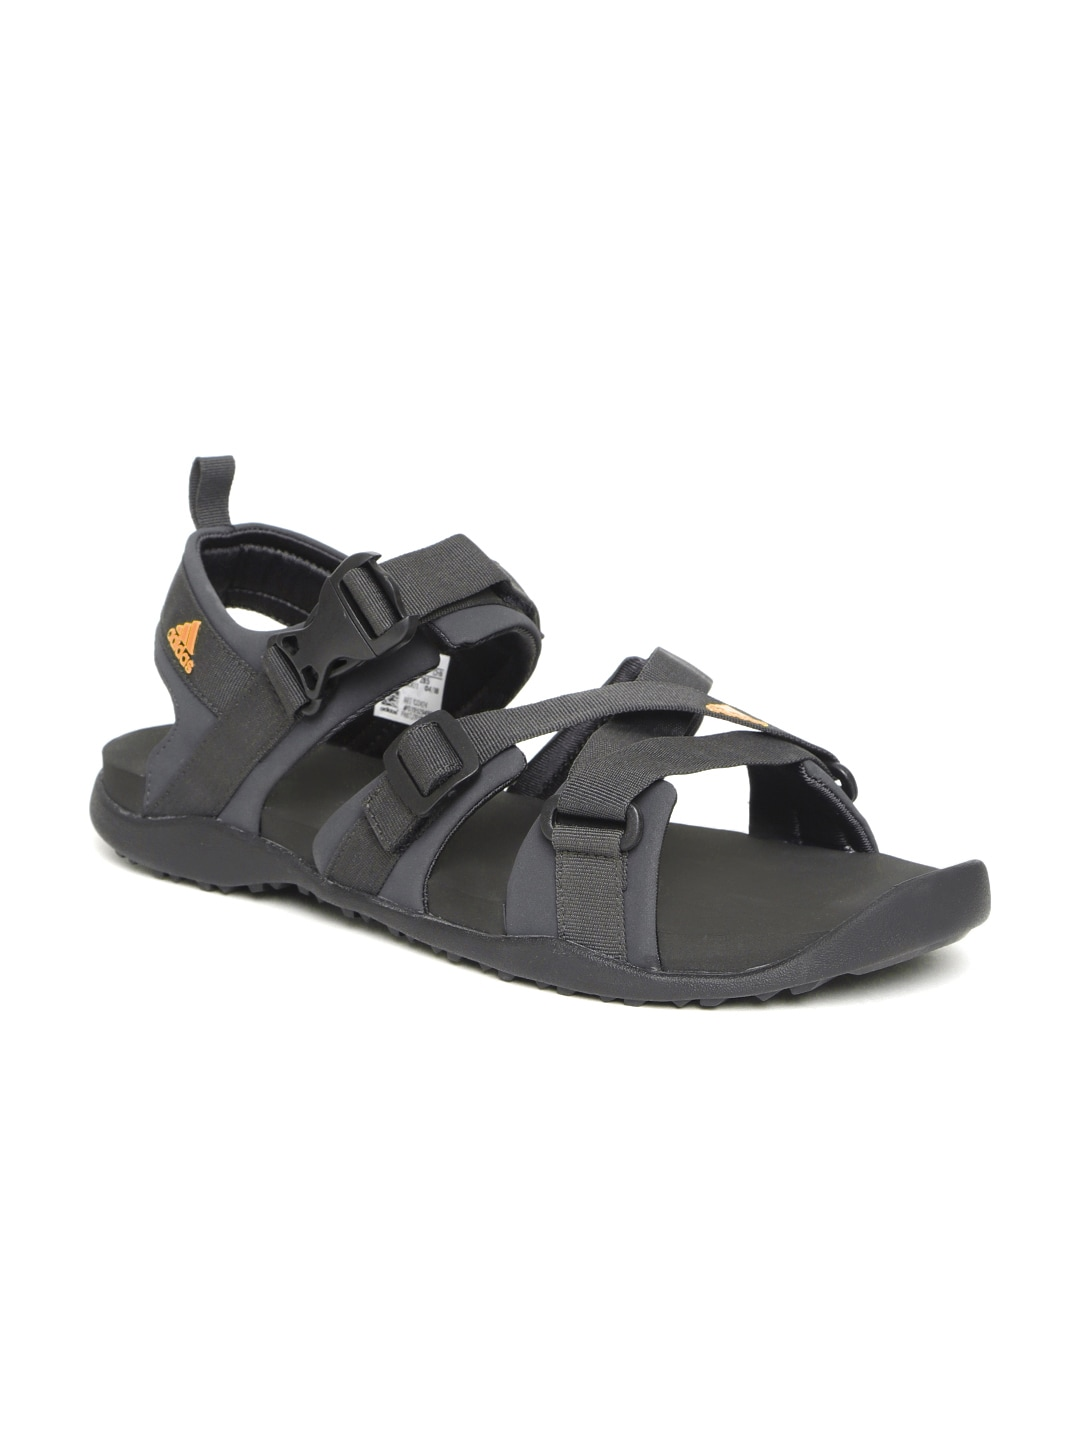 616c8a722821 Sandal Men Adidas Footwear Sandals - Buy Sandal Men Adidas Footwear Sandals  online in India